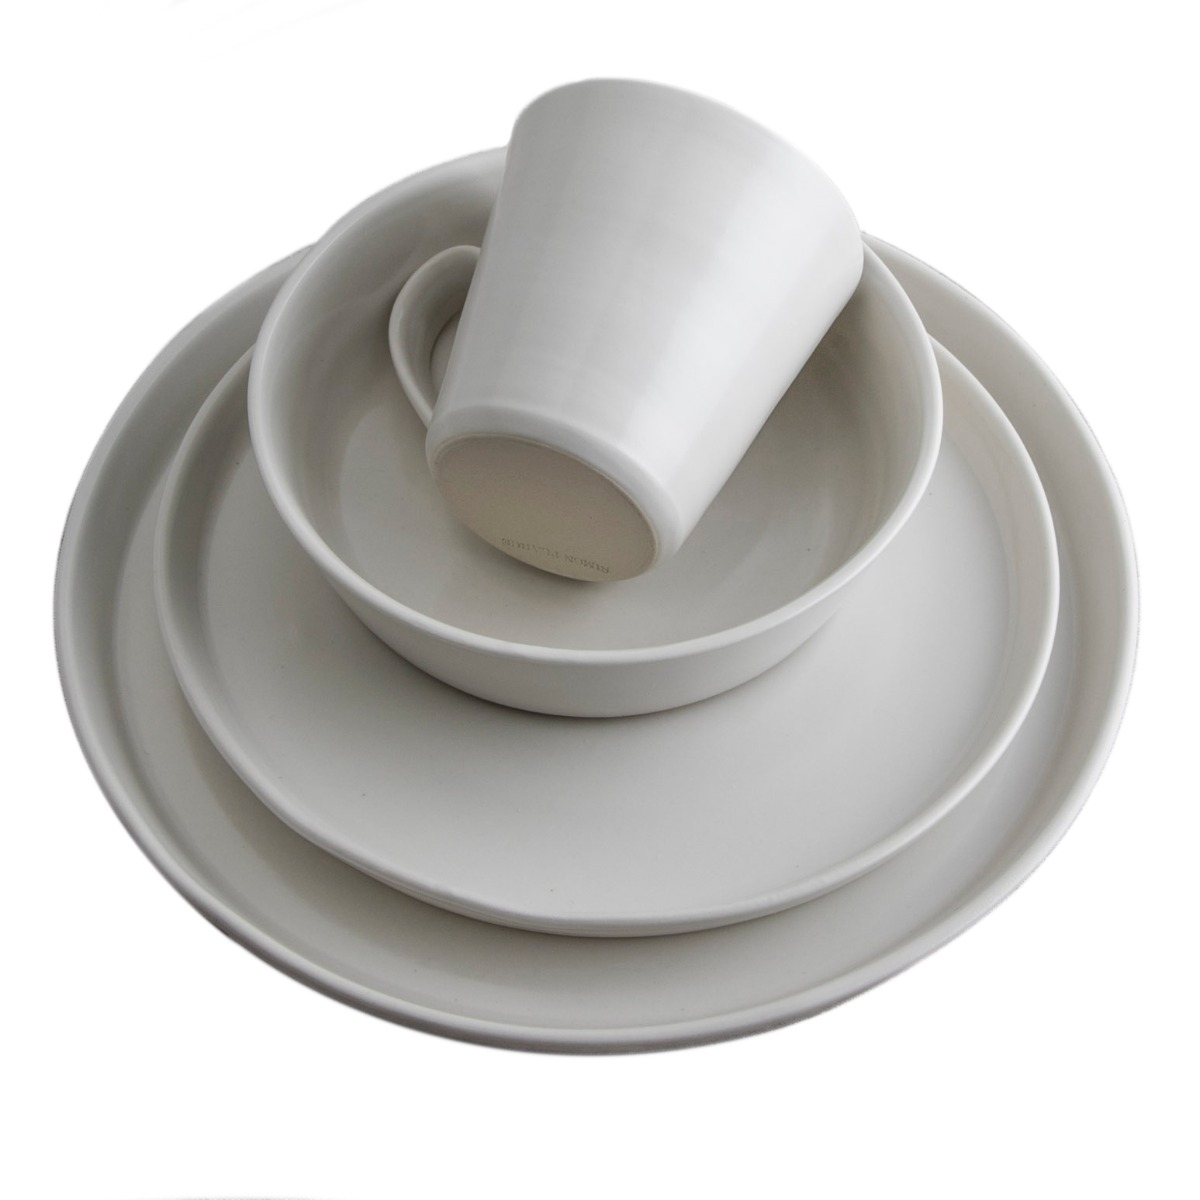 WESTPORT ALABASTER DINNERWARE